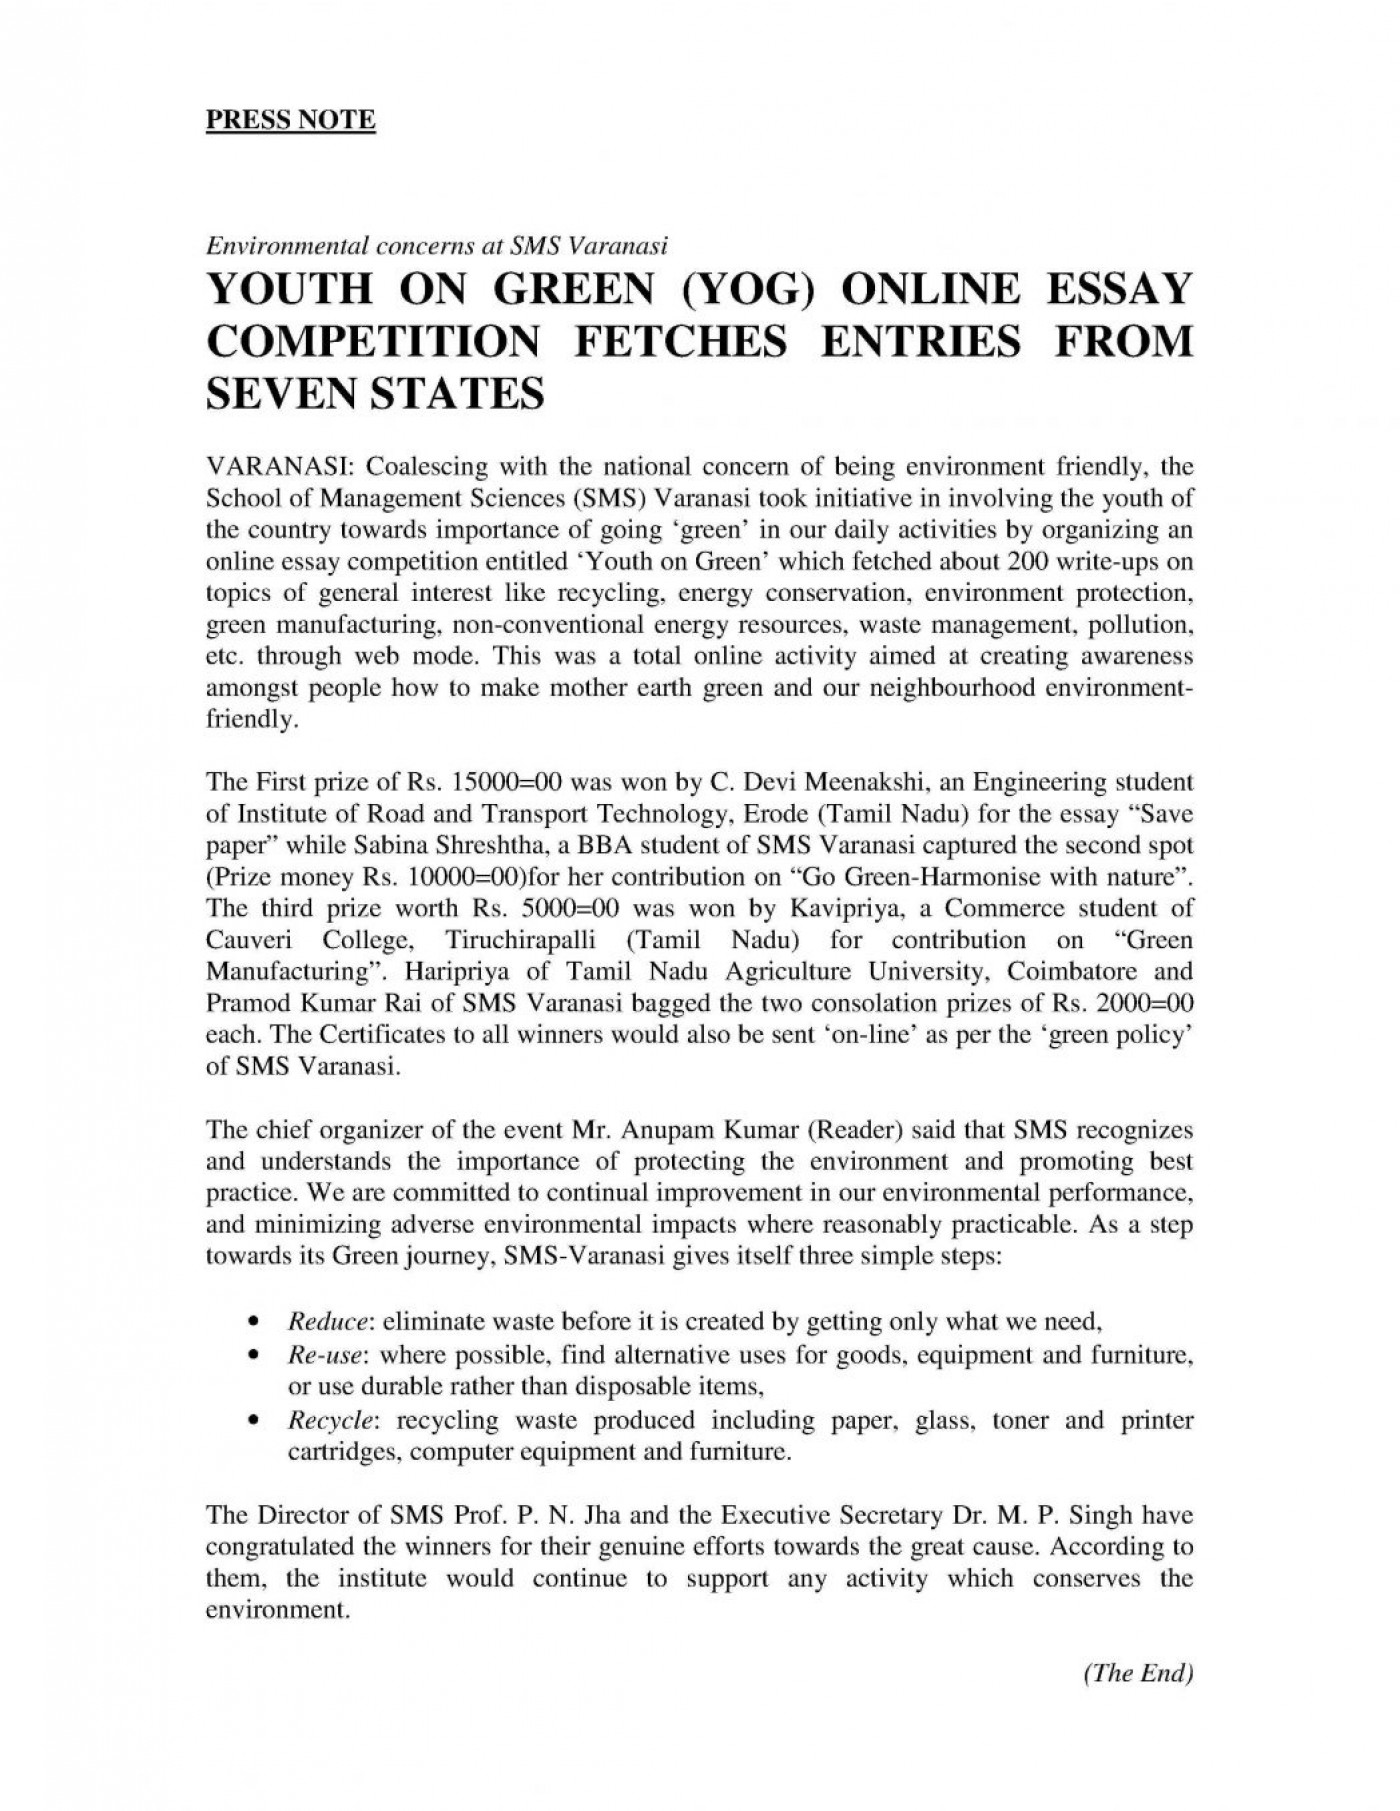 020 Best Essays For College Essay On Good Habits How Tot Application Online Yog Press Re About Yourself Examples Your Background Failure Prompt Off Hook 1048x1356 Example Amazing To Start An Bad With A Question Ways Definition 1400